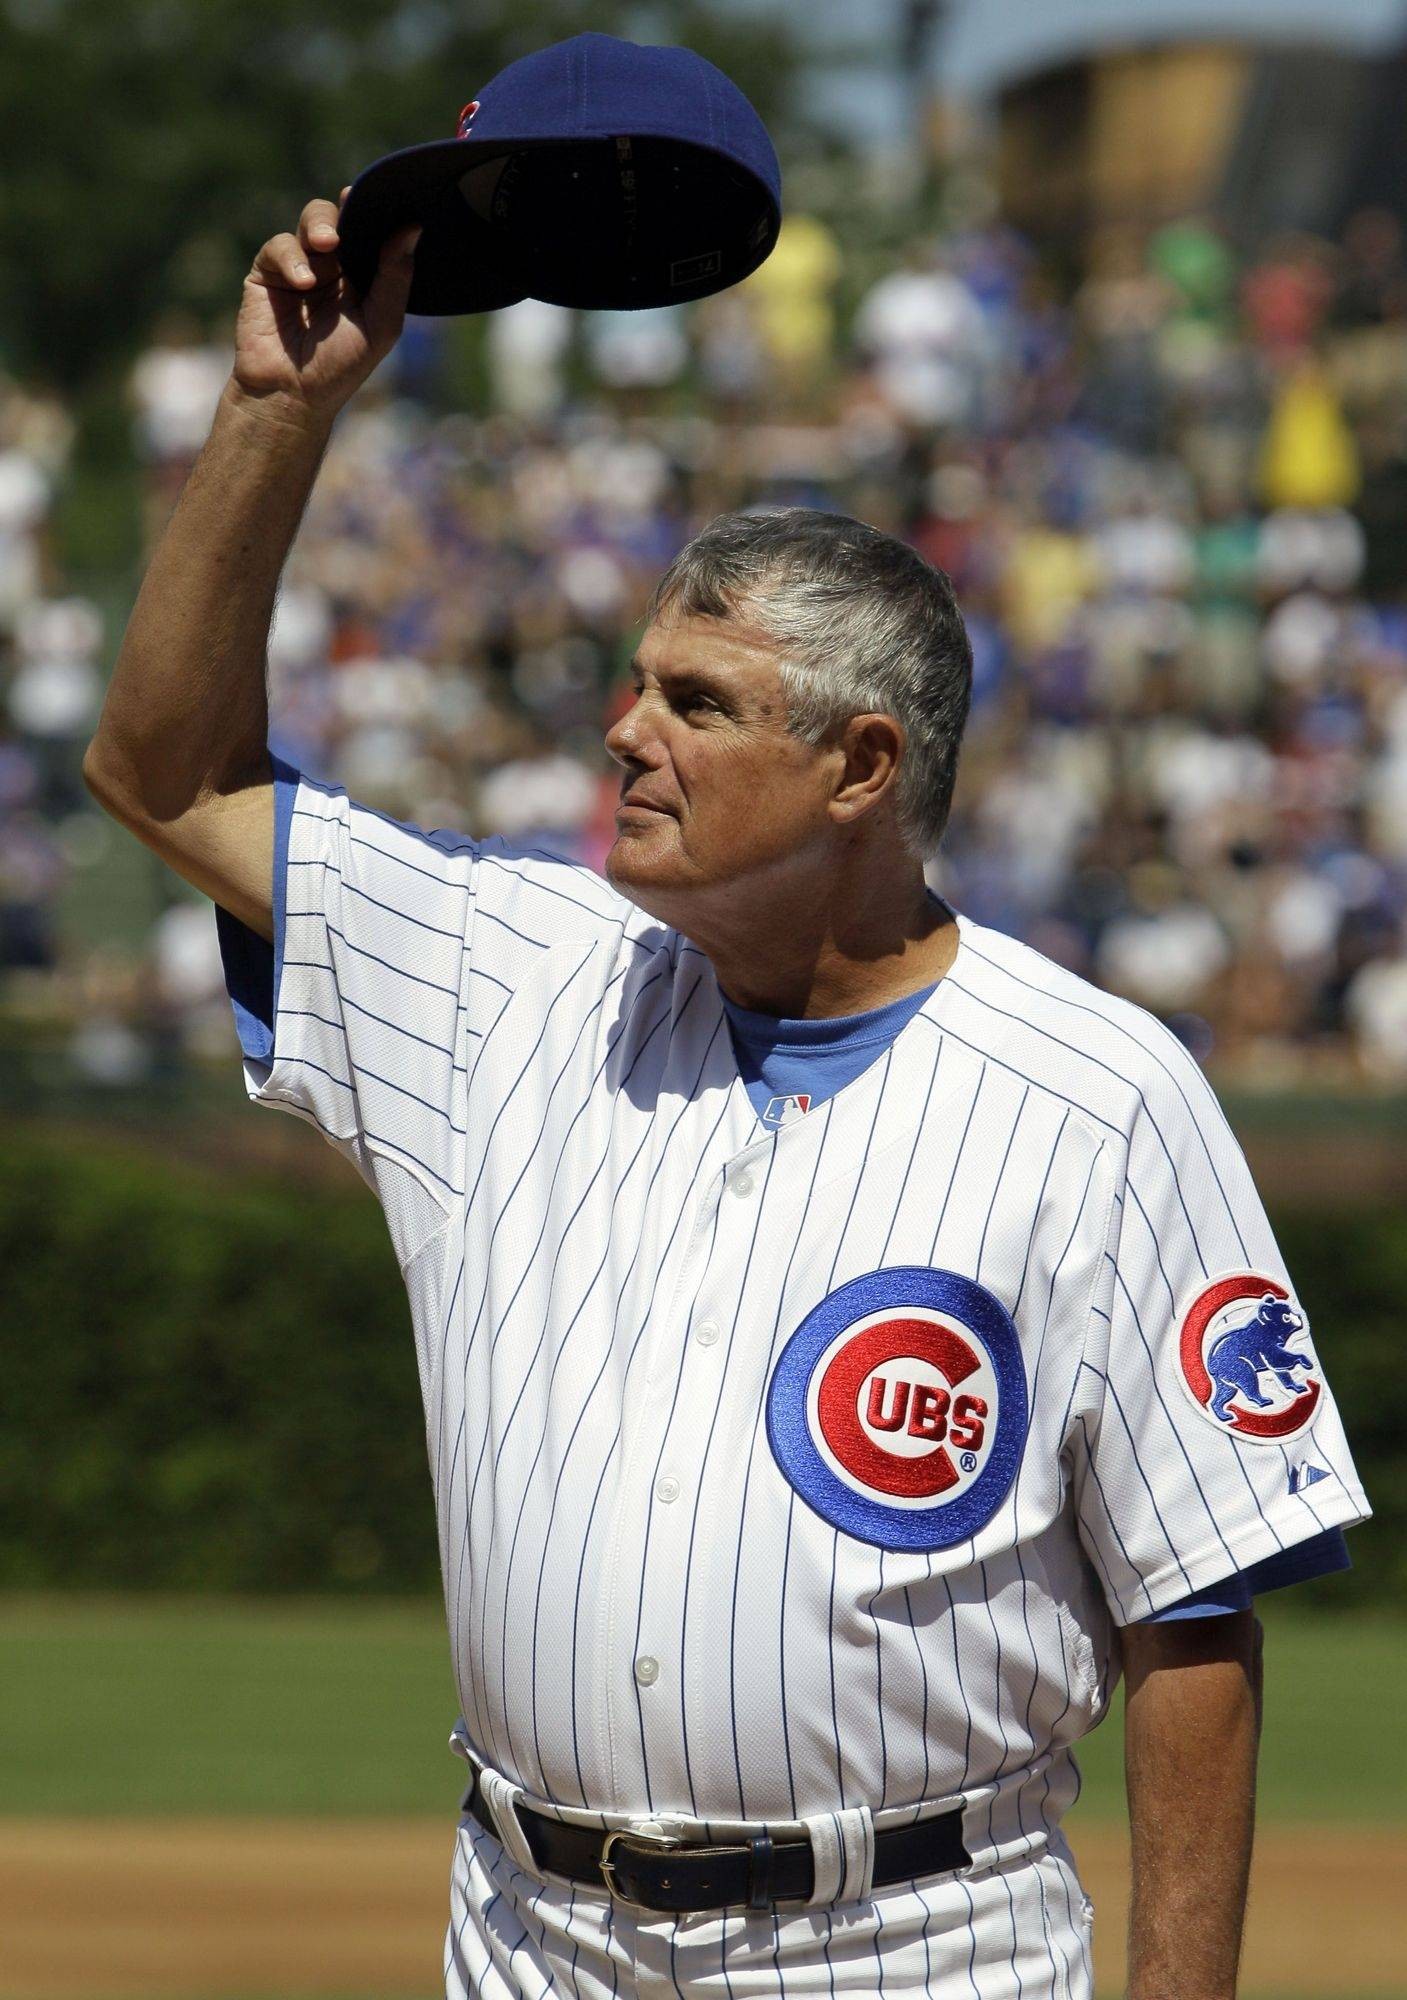 As he tearfully waves goodbye to the fans Sunday during his last game at Wrigley Field, Chicago Cubs skipper Lou Piniella manages a feat most of us Cubs fans just can't do. He quits the Cubs.